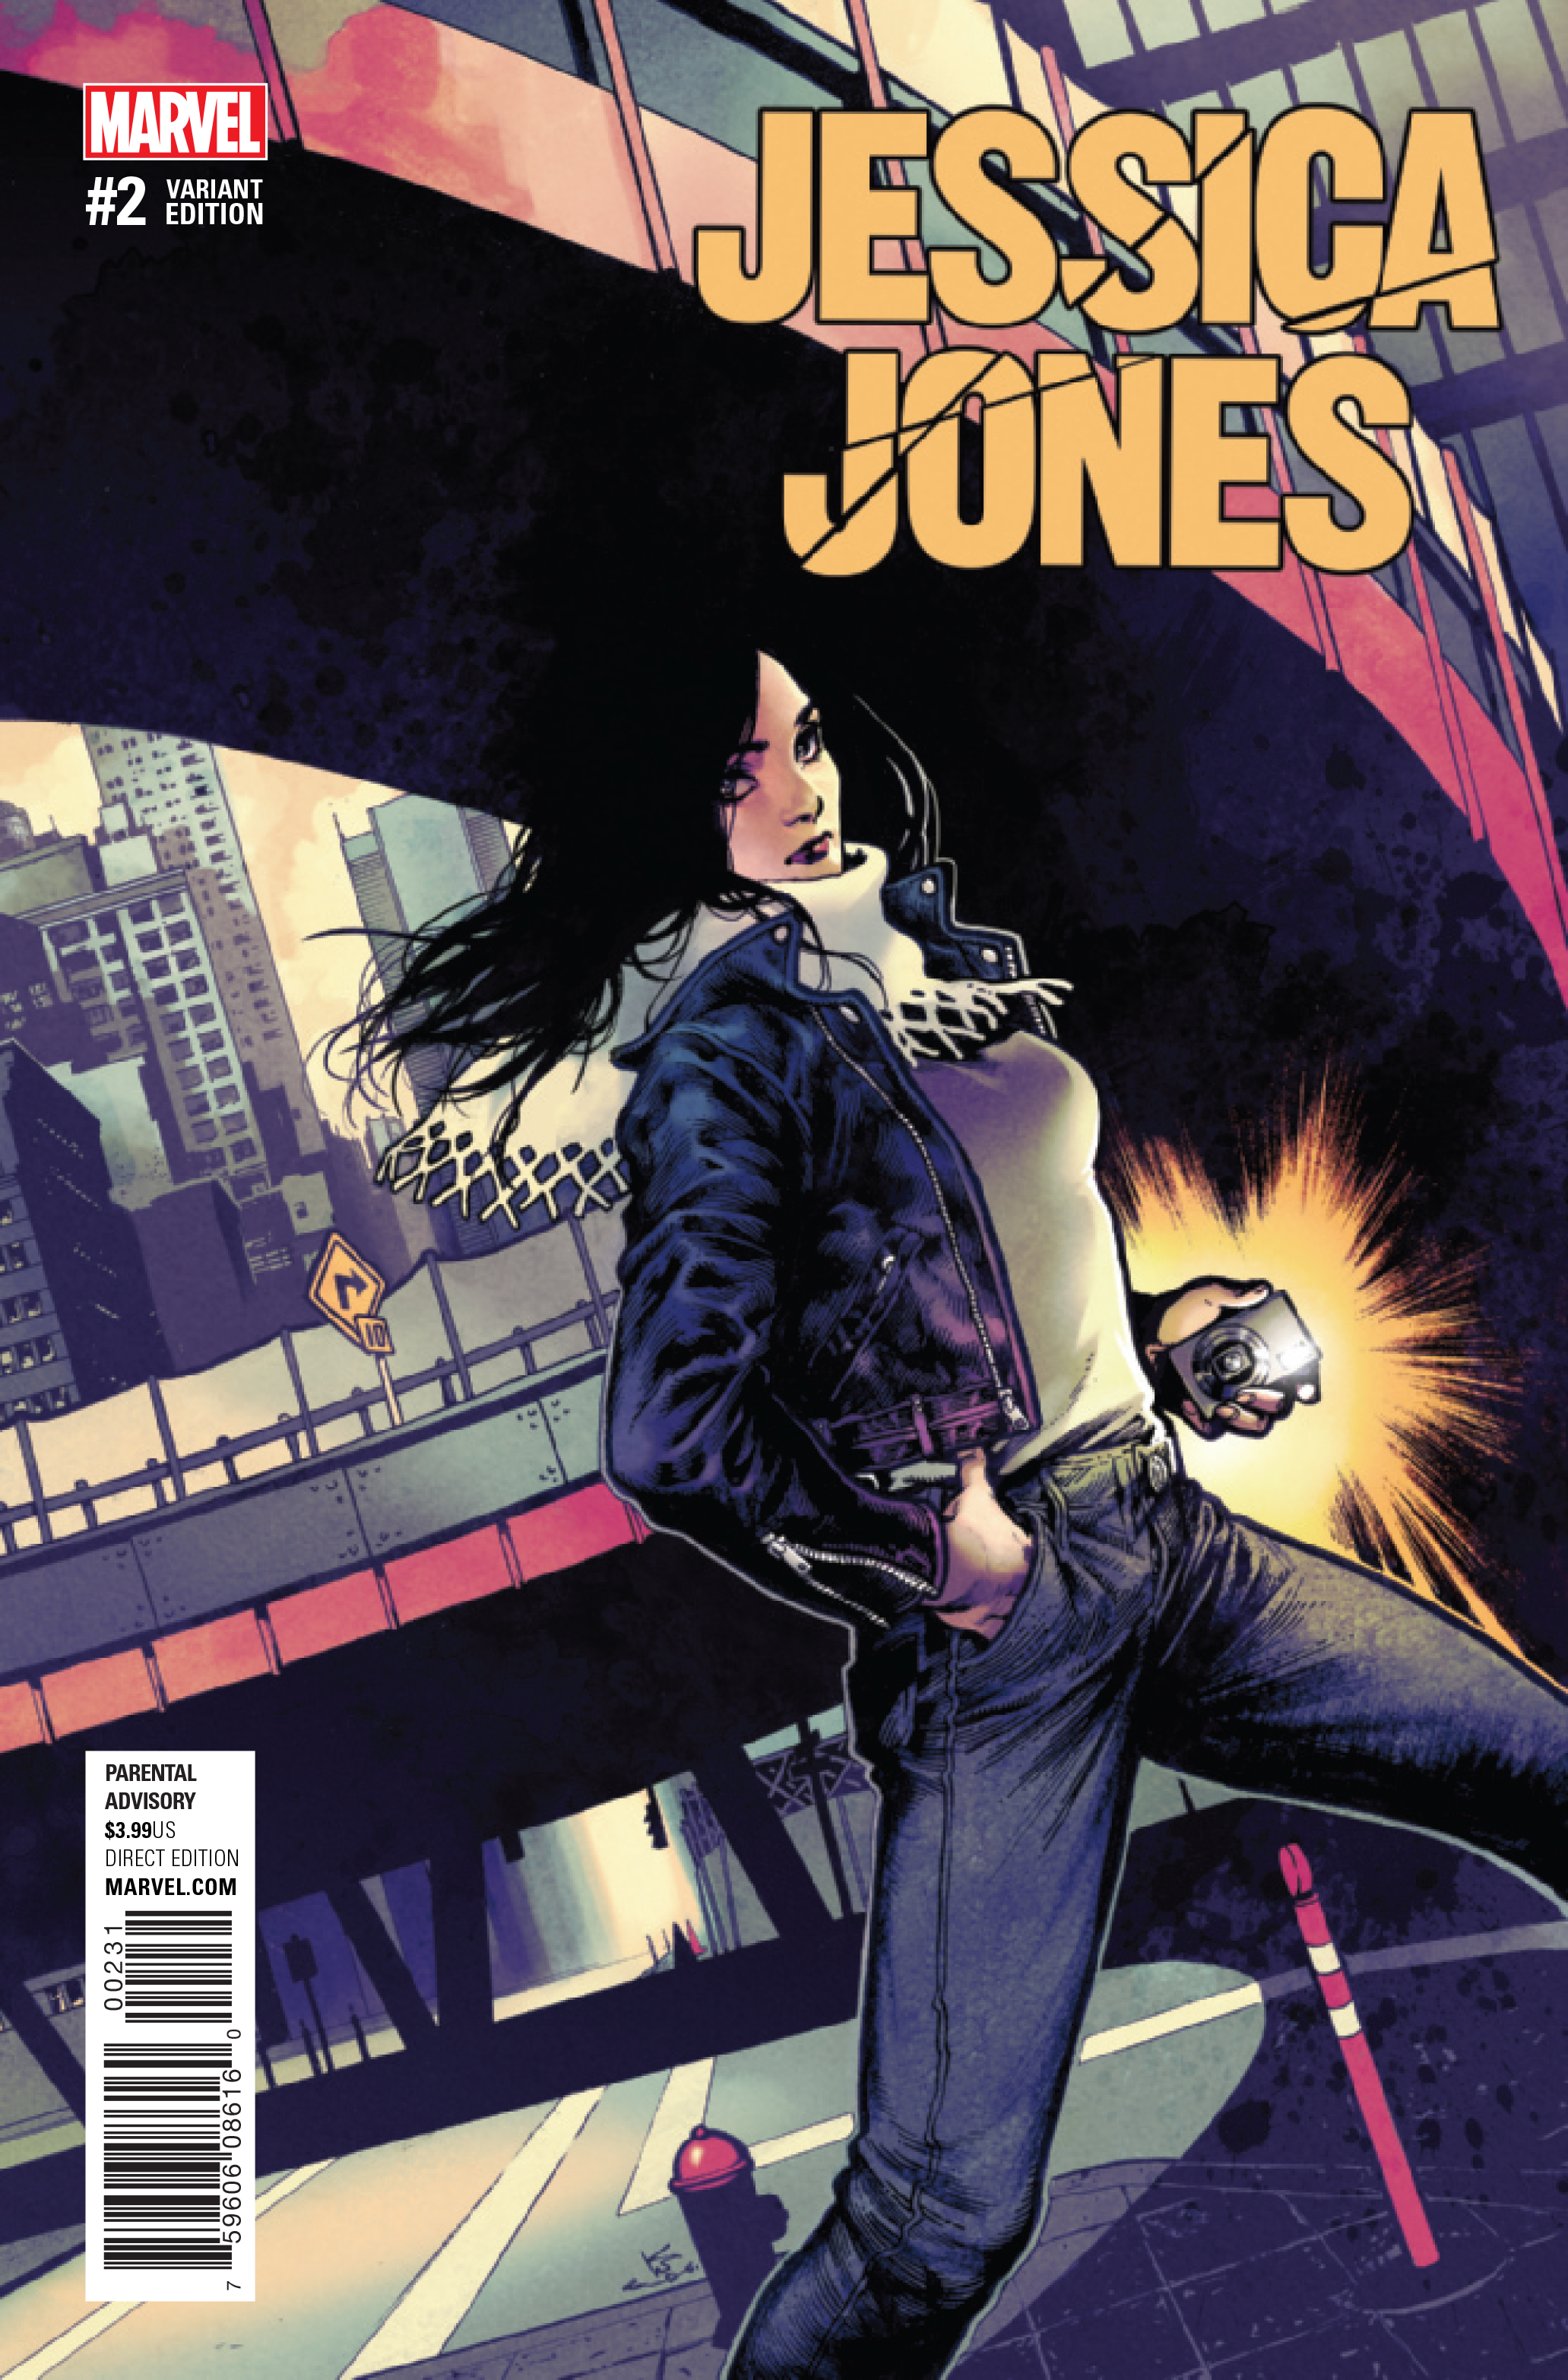 JESSICA JONES #2 SHIRAHAMA VAR